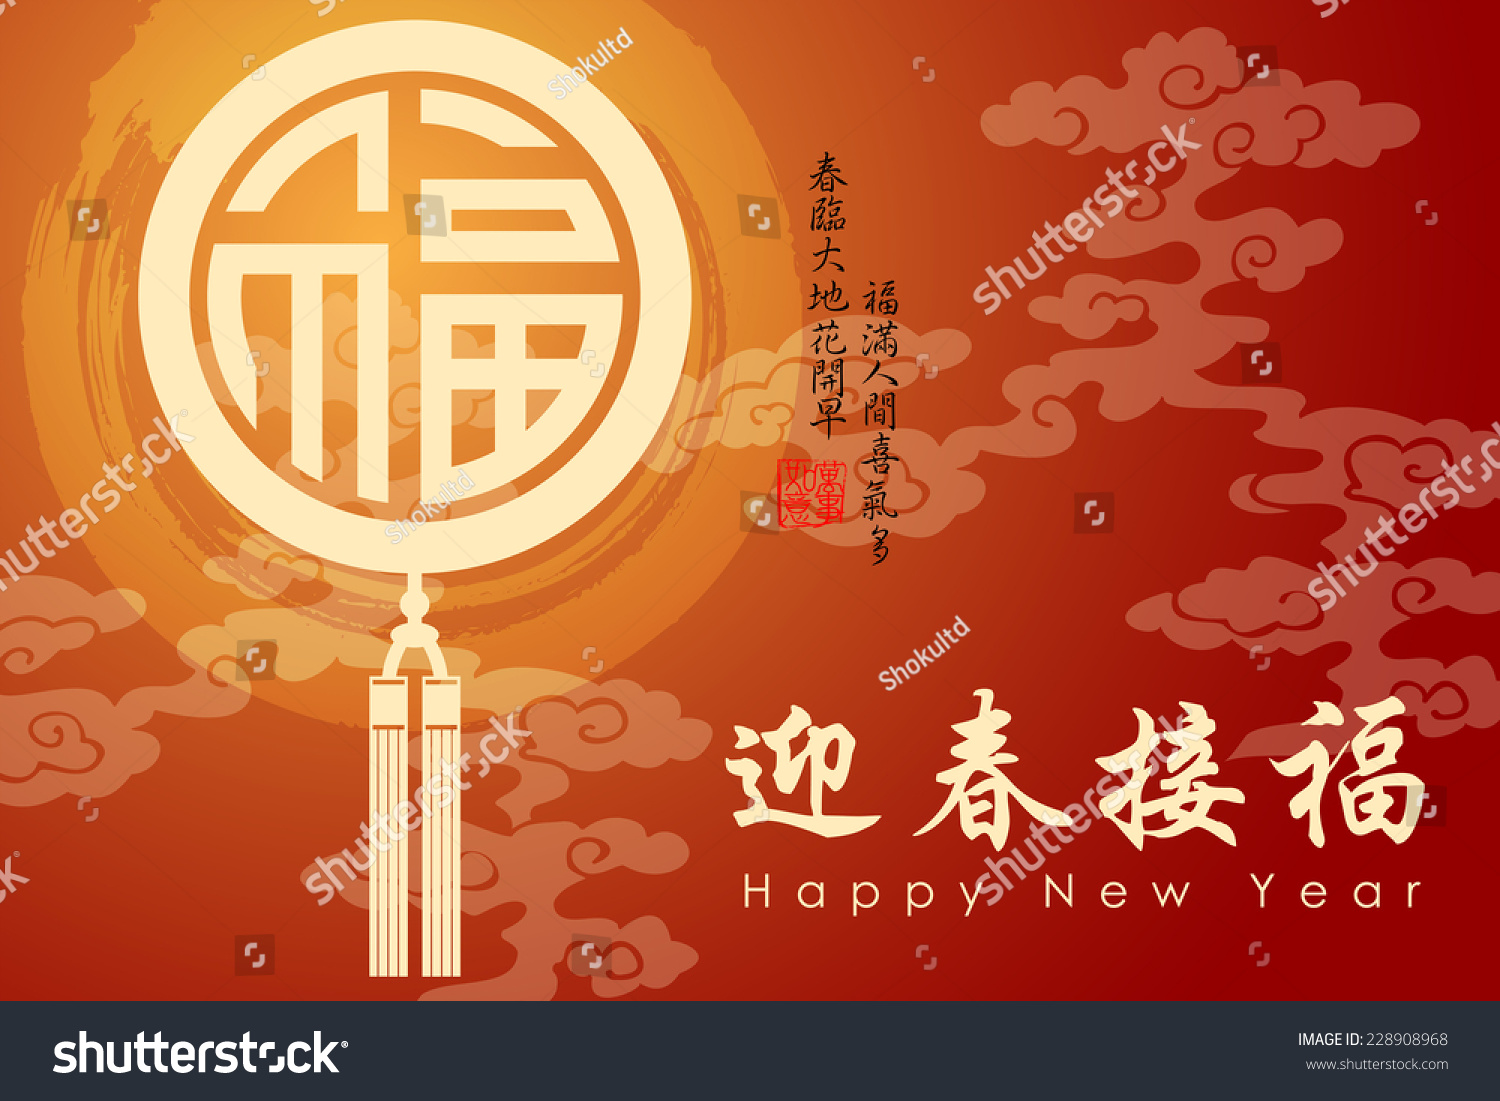 Chinese New Year Greeting Card Design Translation Stock Illustration